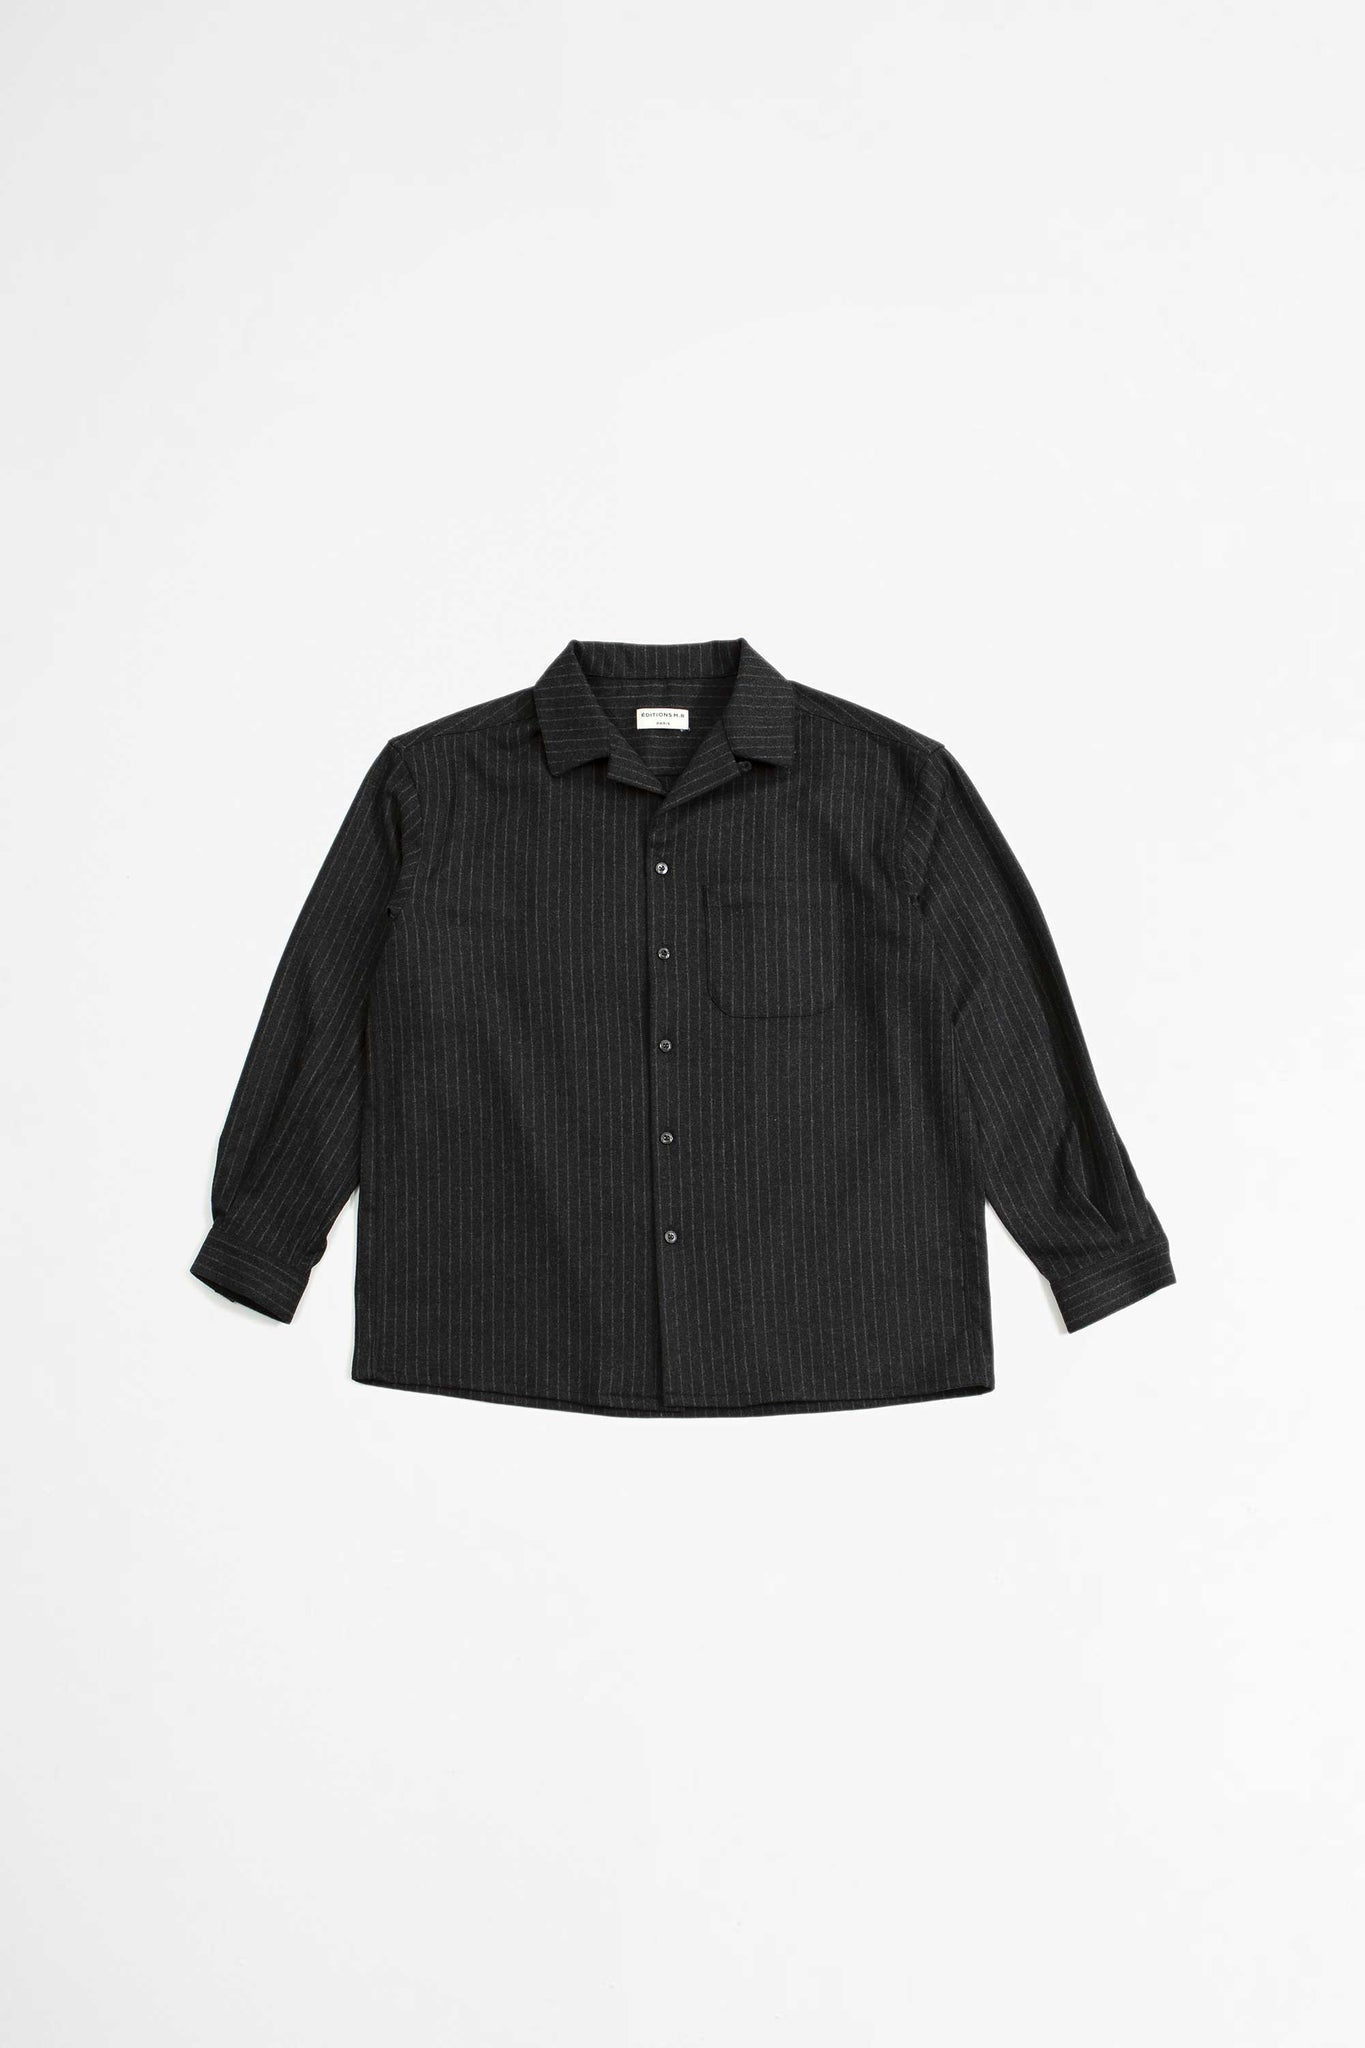 Regis overshirt charcoal